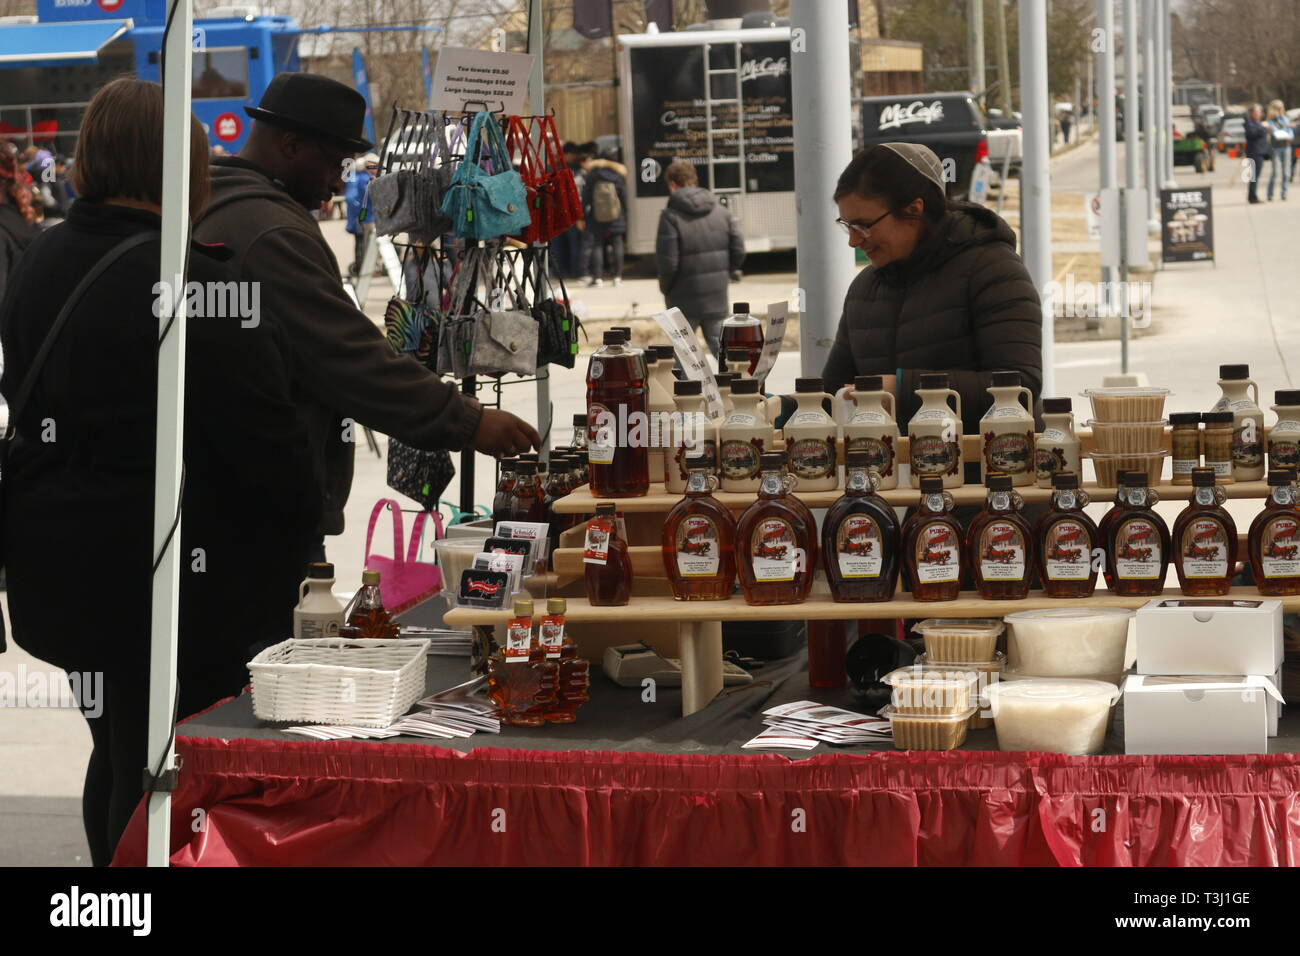 Elmira Canada, April 06 2019: Various maple syrup related goods for sale at a vendors booth. The maple syrup festival draws in visitors from around - Stock Image